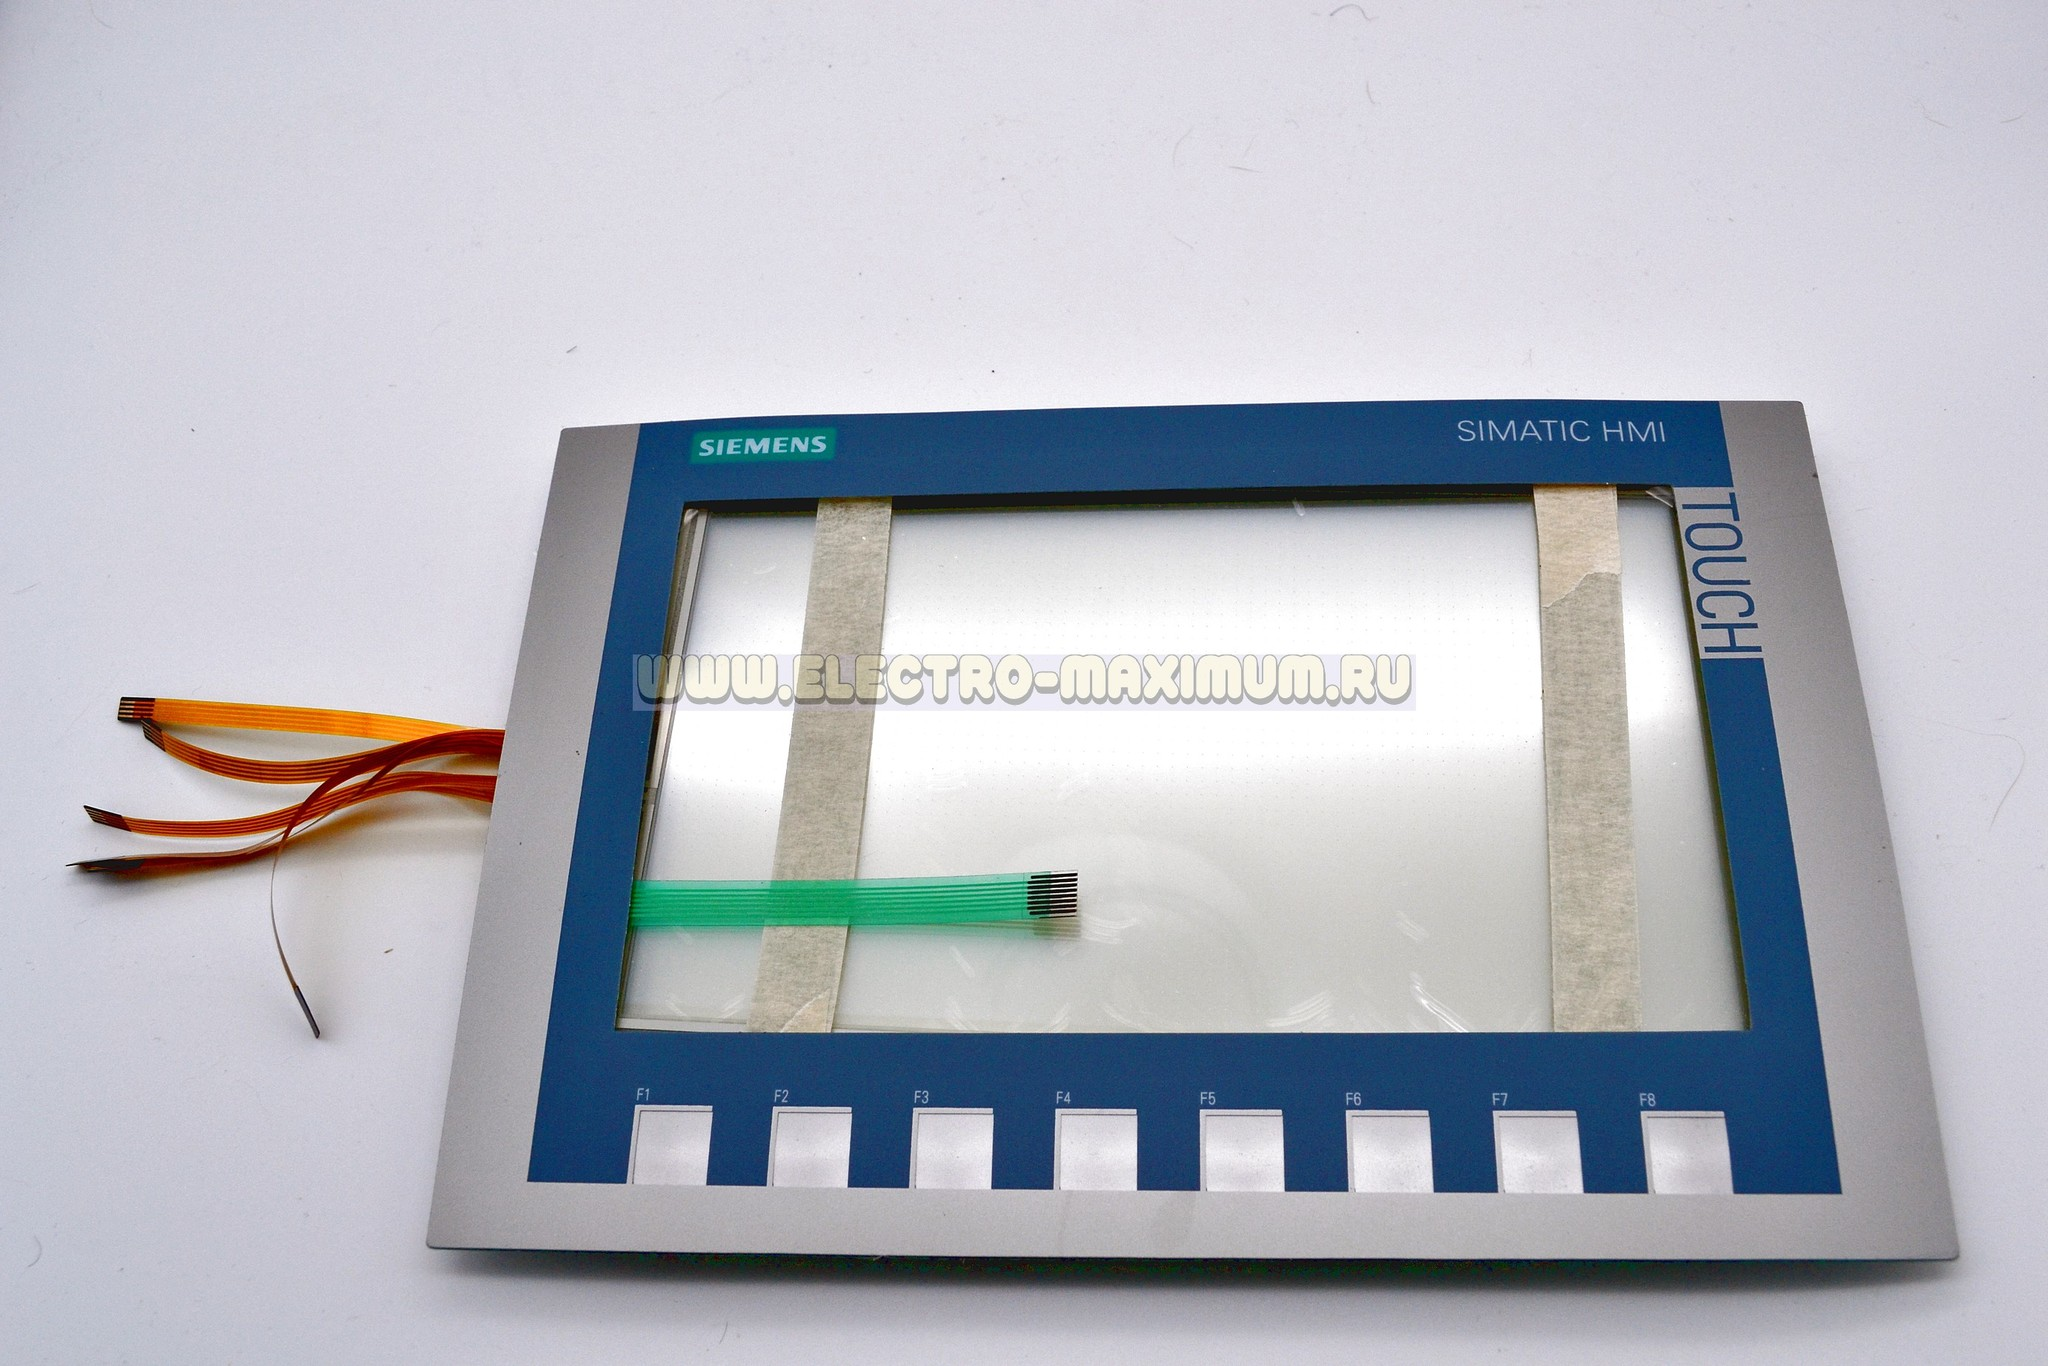 Ремкомплект KTP900 touch screen with membrane keypad.  6AV2123-2JB03-0AX0